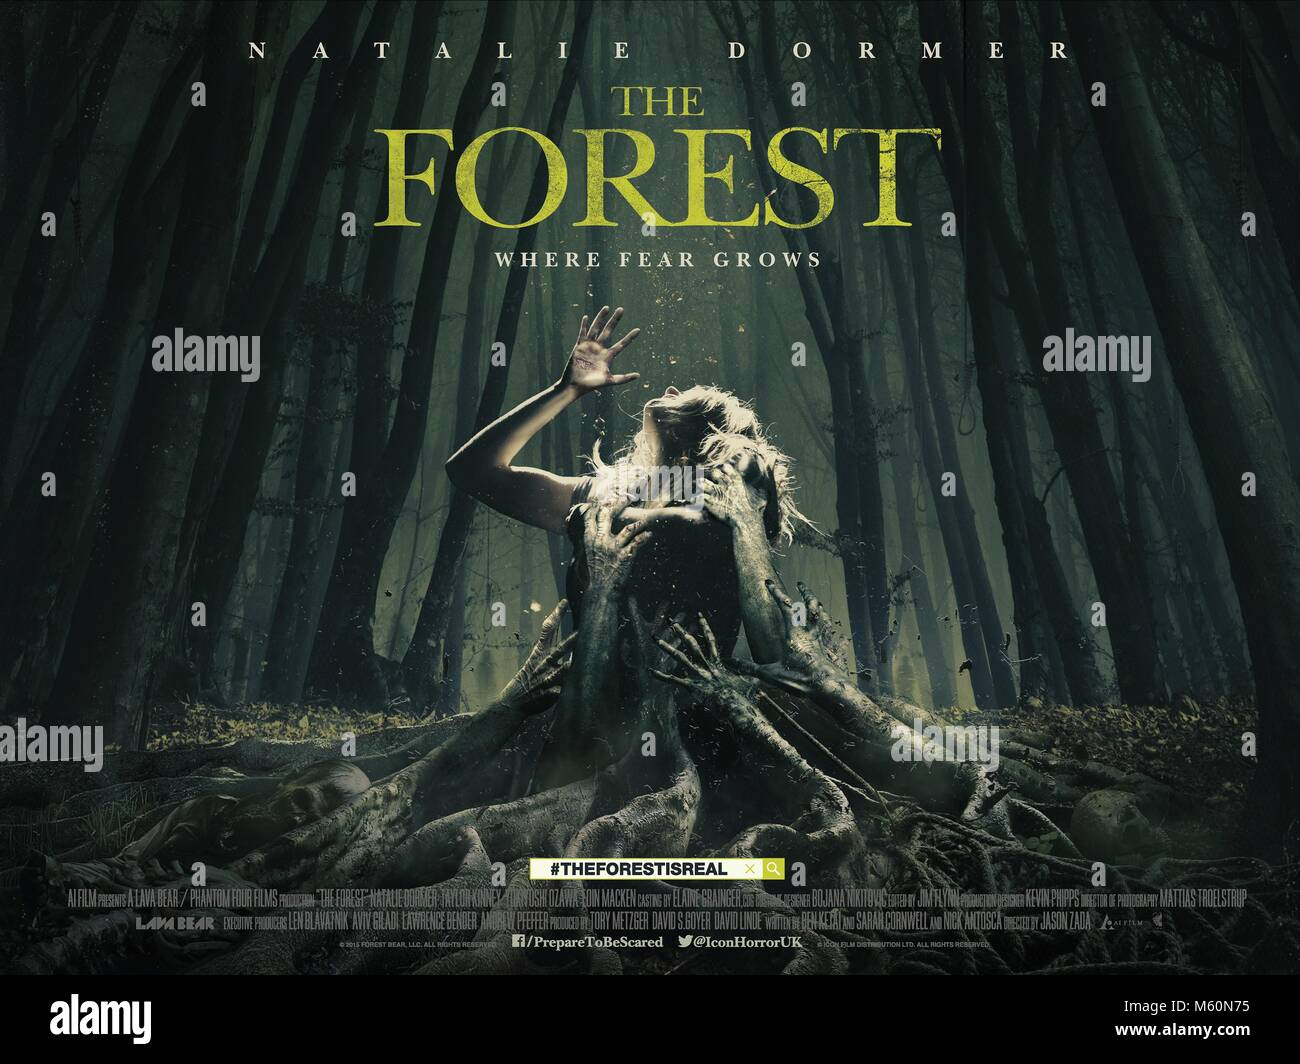 MOVIE POSTER THE FOREST (2016) - Stock Image